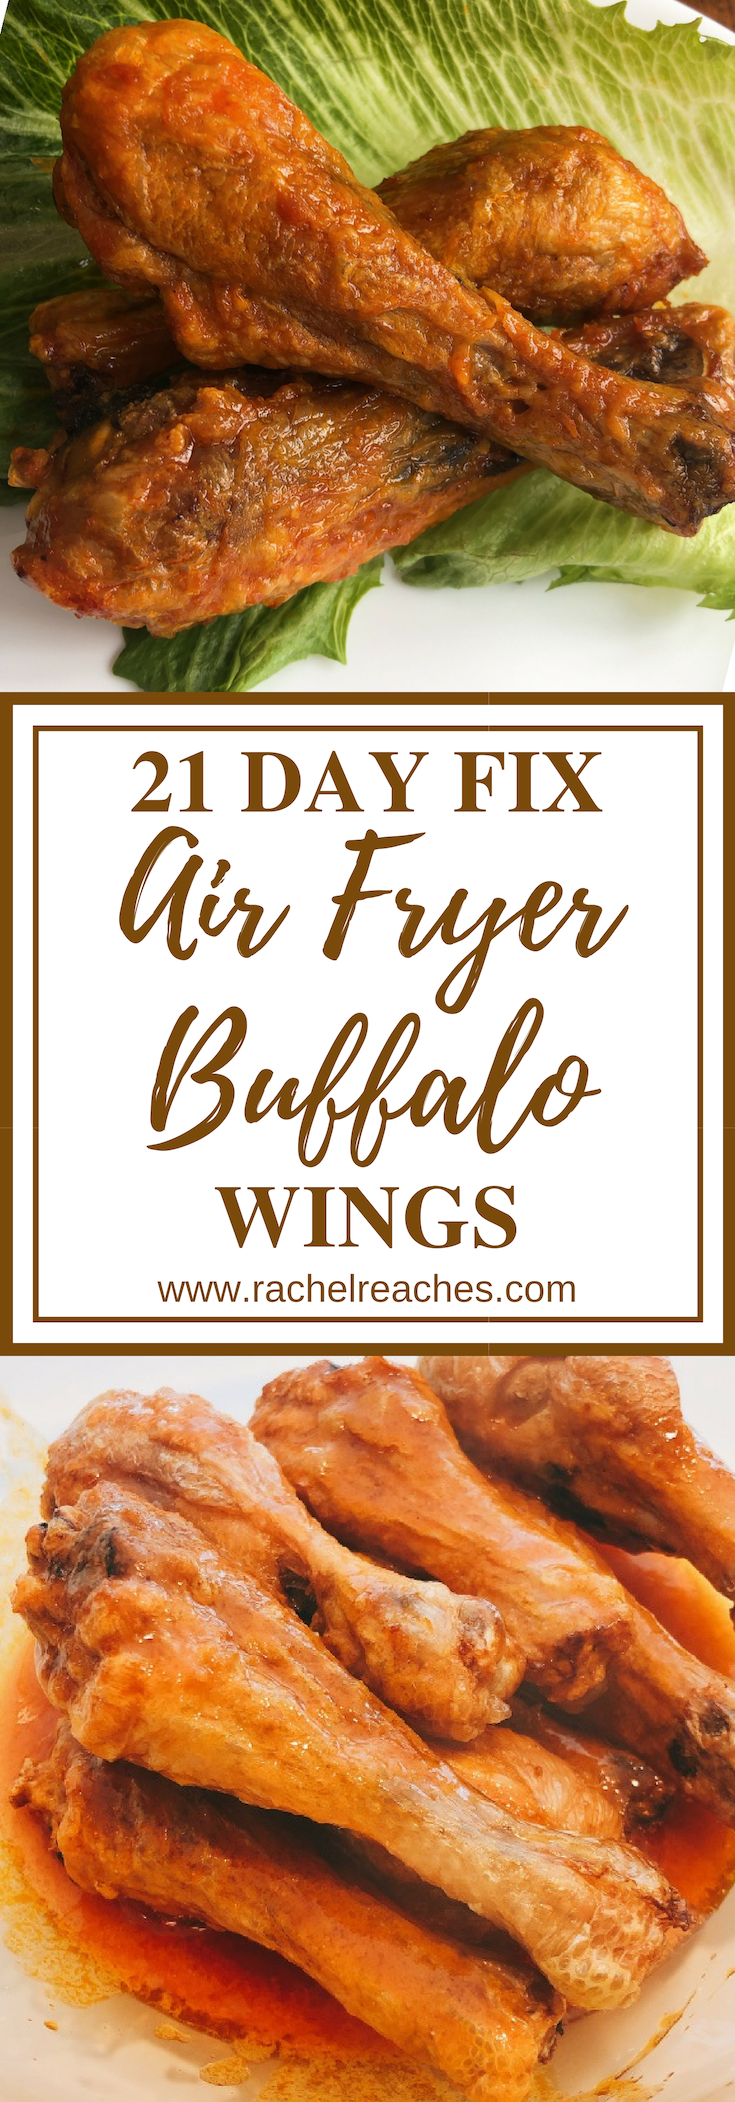 Air Fryer Chicken Wings Pin - 21 Day Fix.png